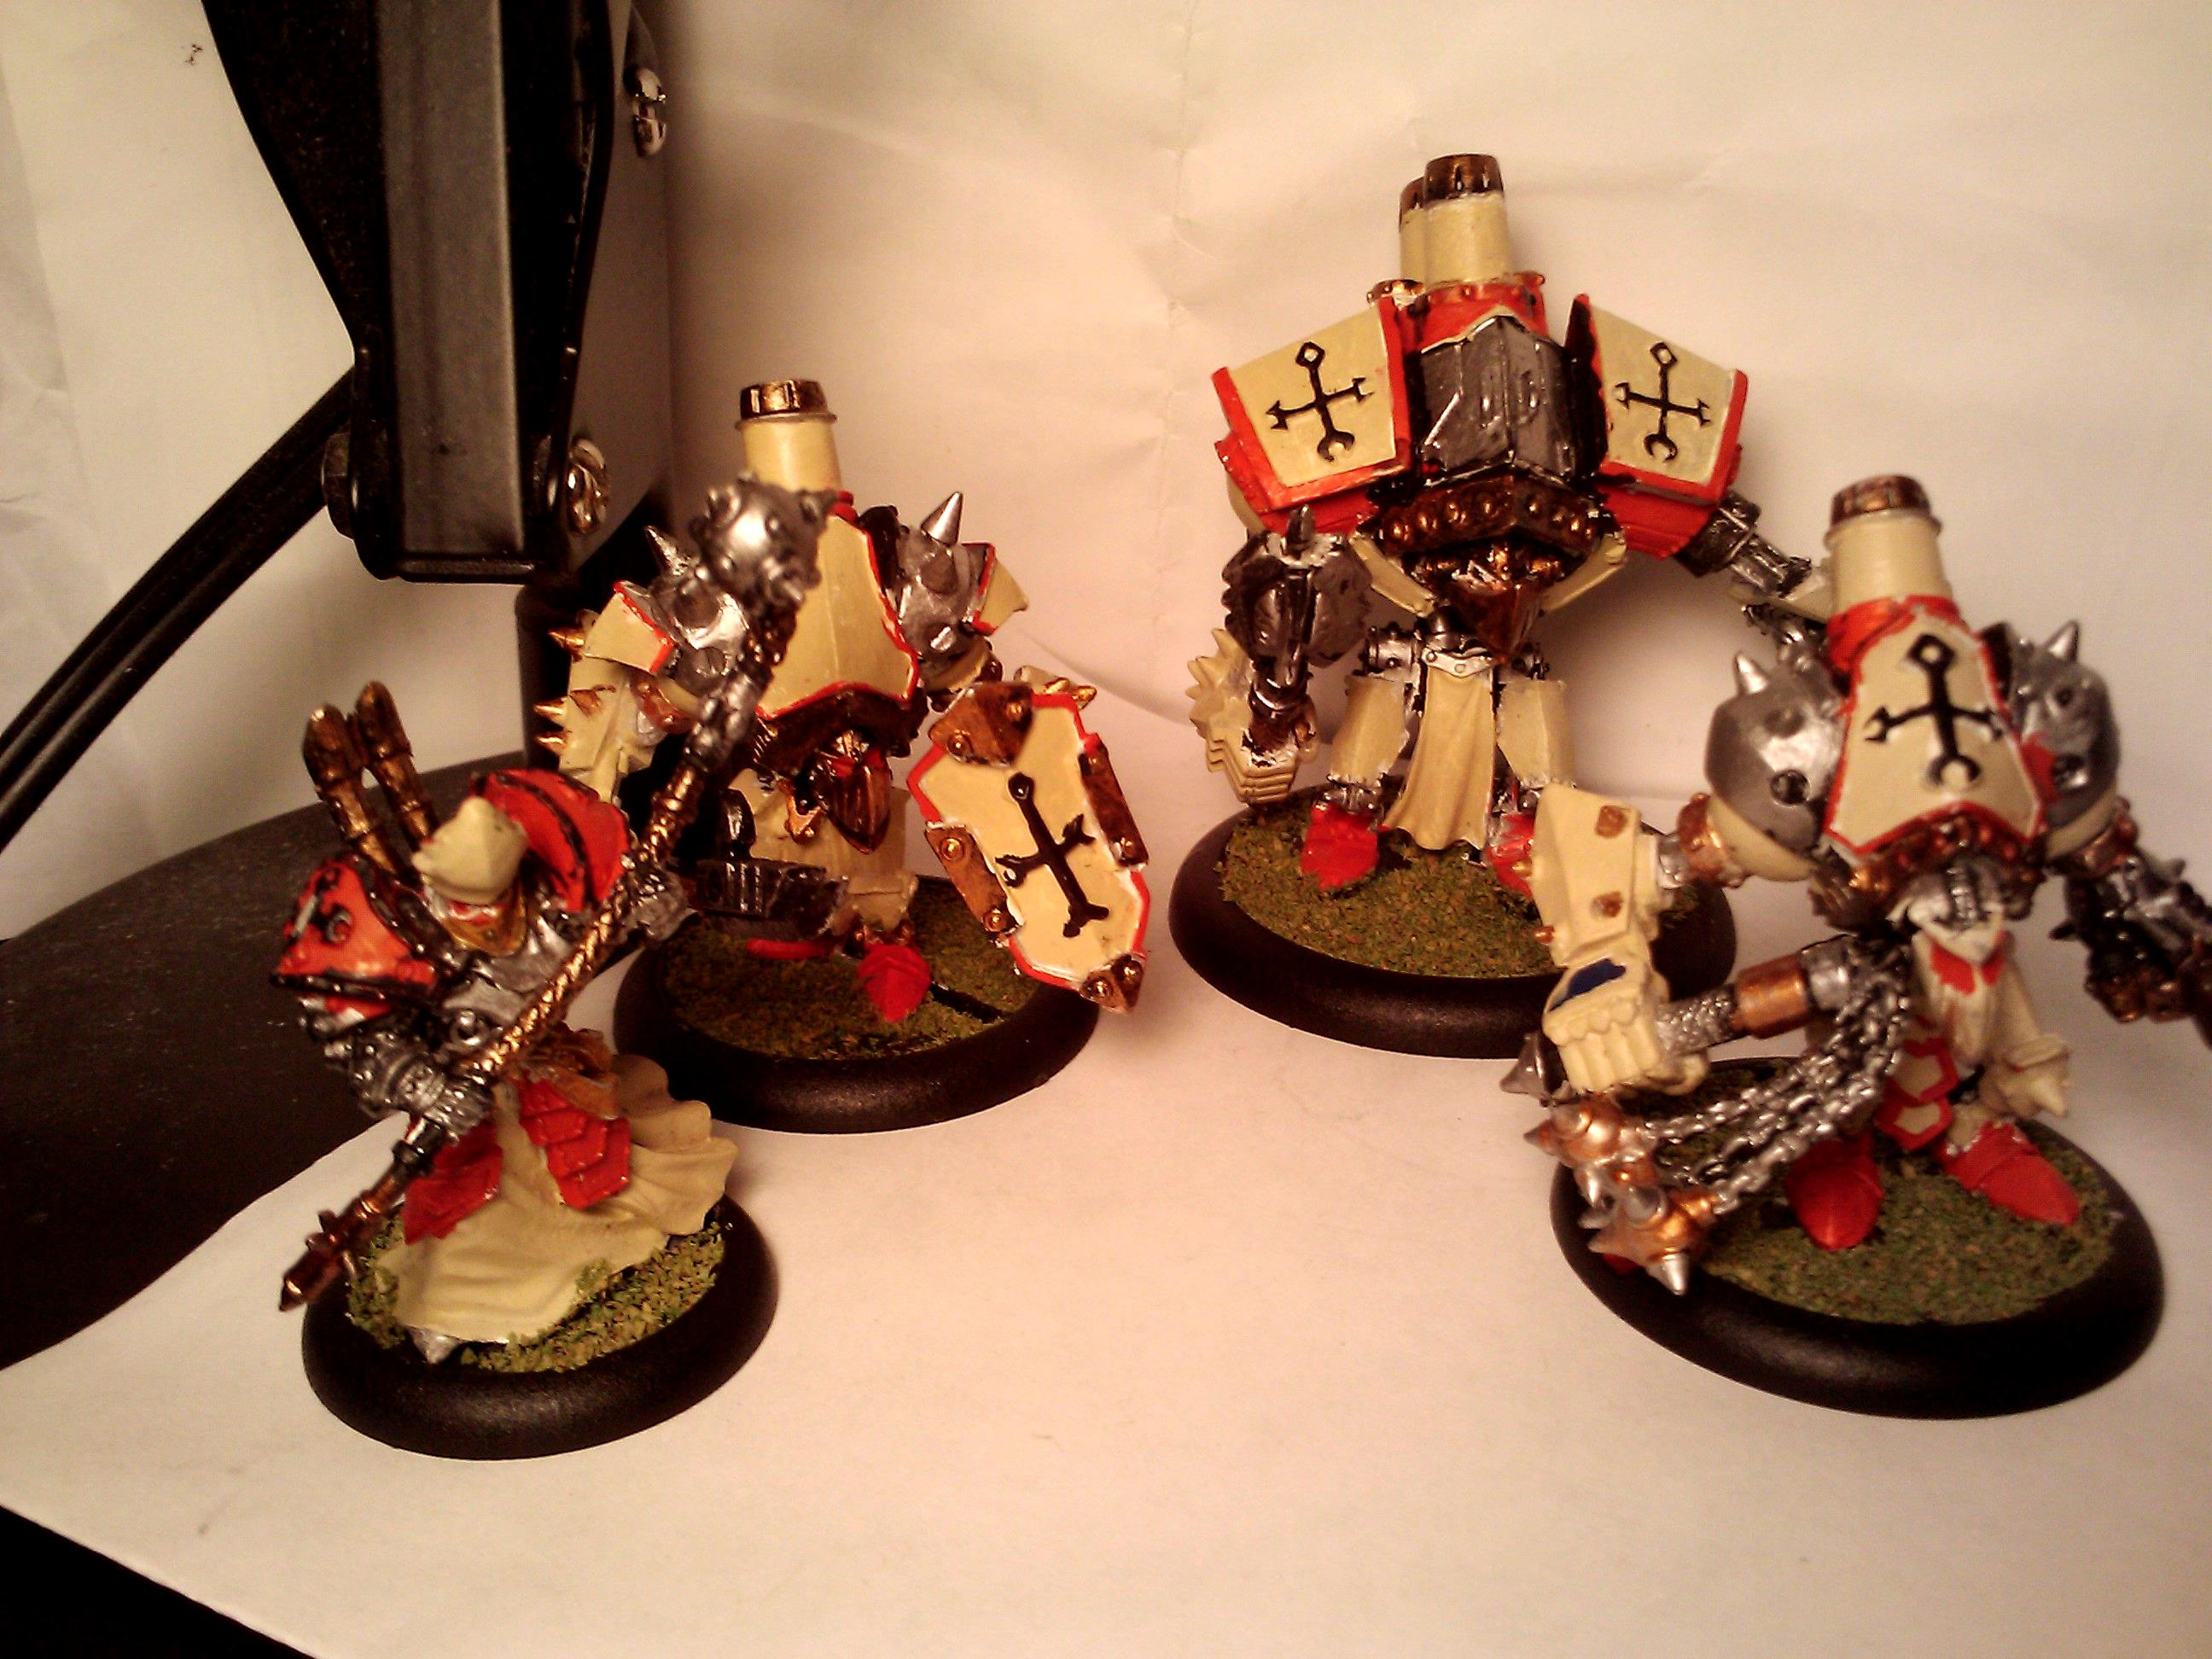 Paint Job, Protectorate, Protectorate Of Menoth, Warjack, Warmachine